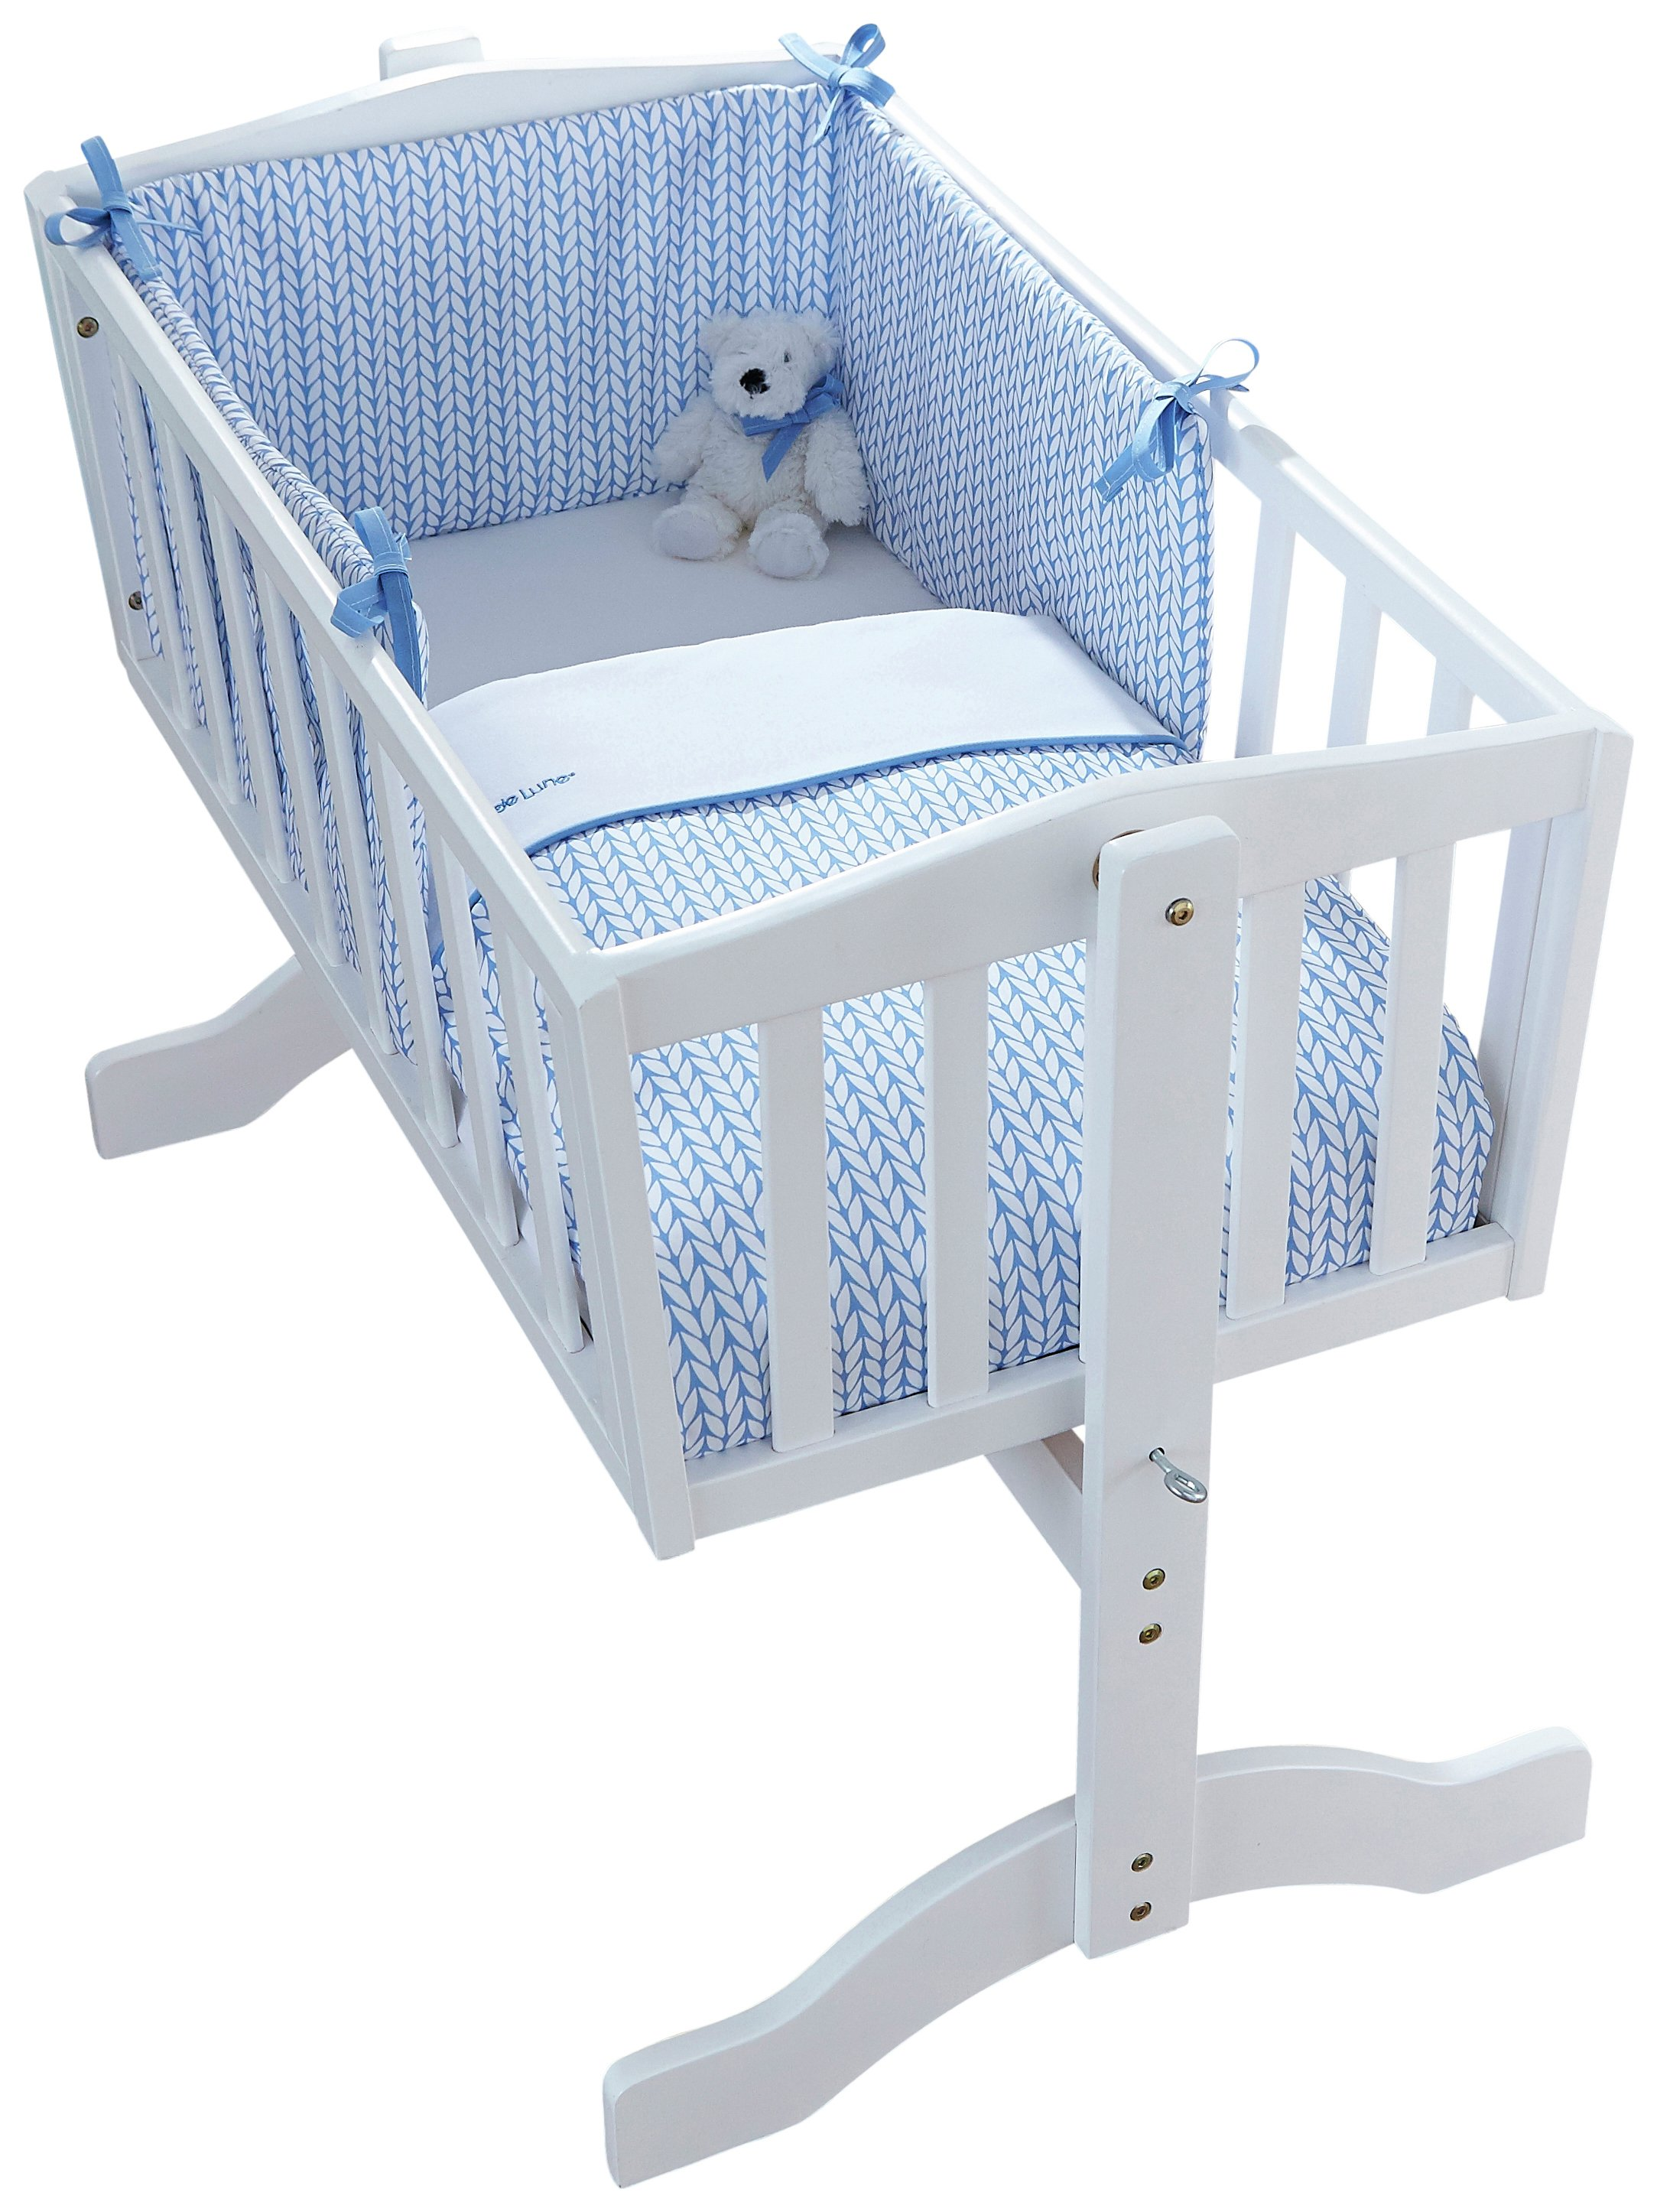 Image of Clair De Lune Barley B??b?? Crib Bedding Set - Blue.